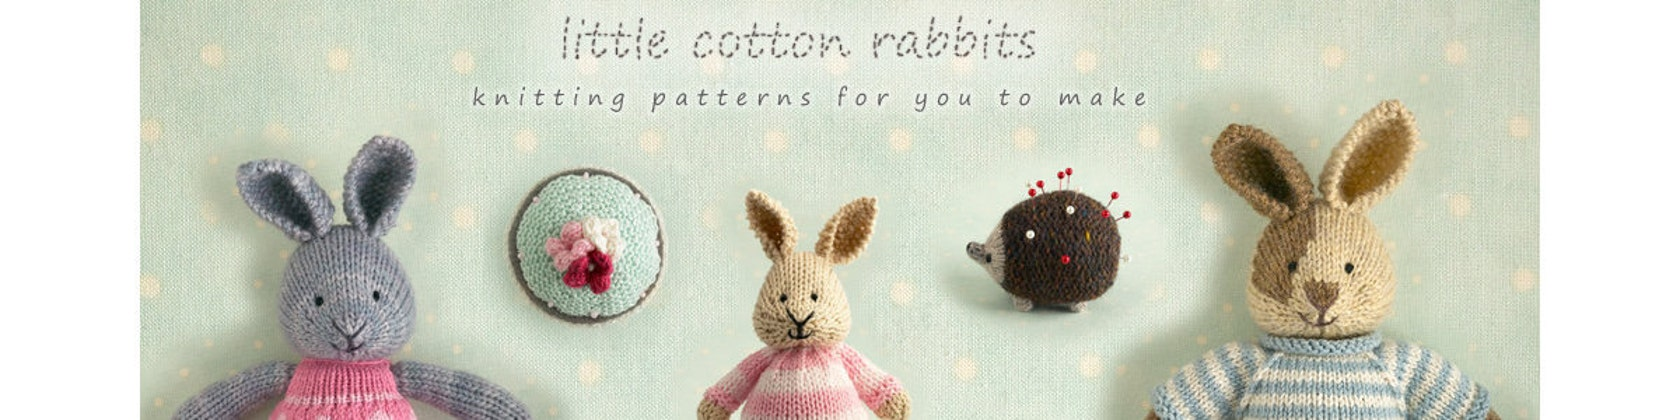 sweetly detailed toy animal knitting von Littlecottonrabbits